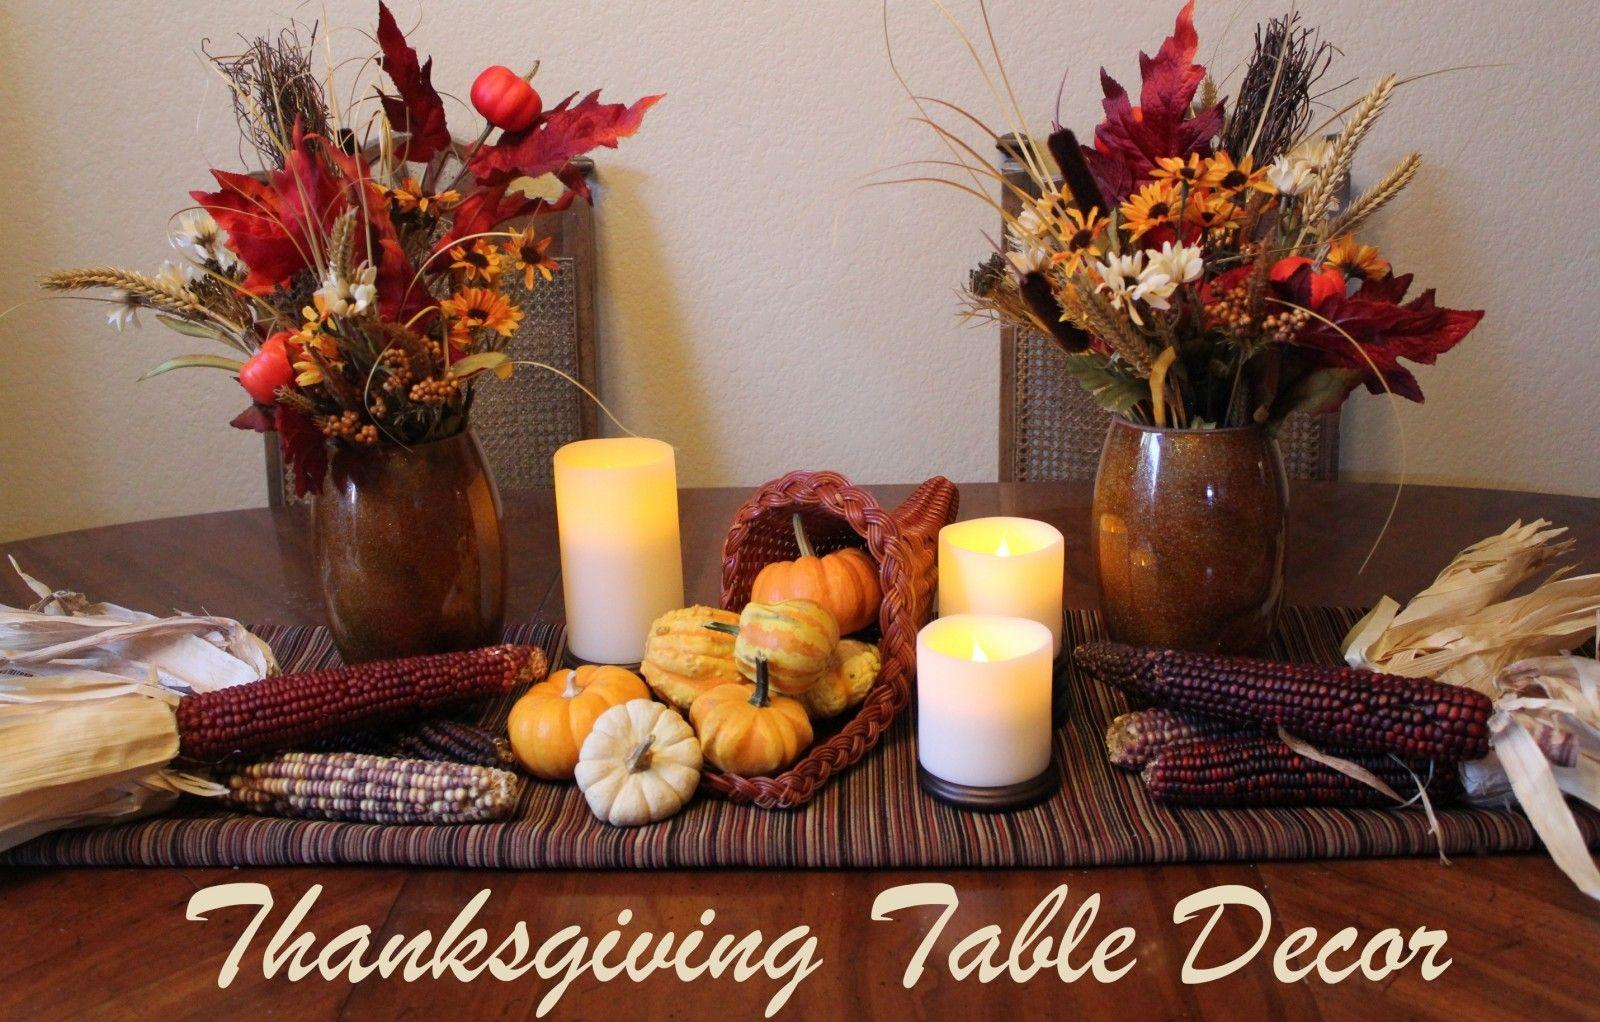 The Thanksgiving Day Decorations Wallpapers Crazy Frankenstein ...